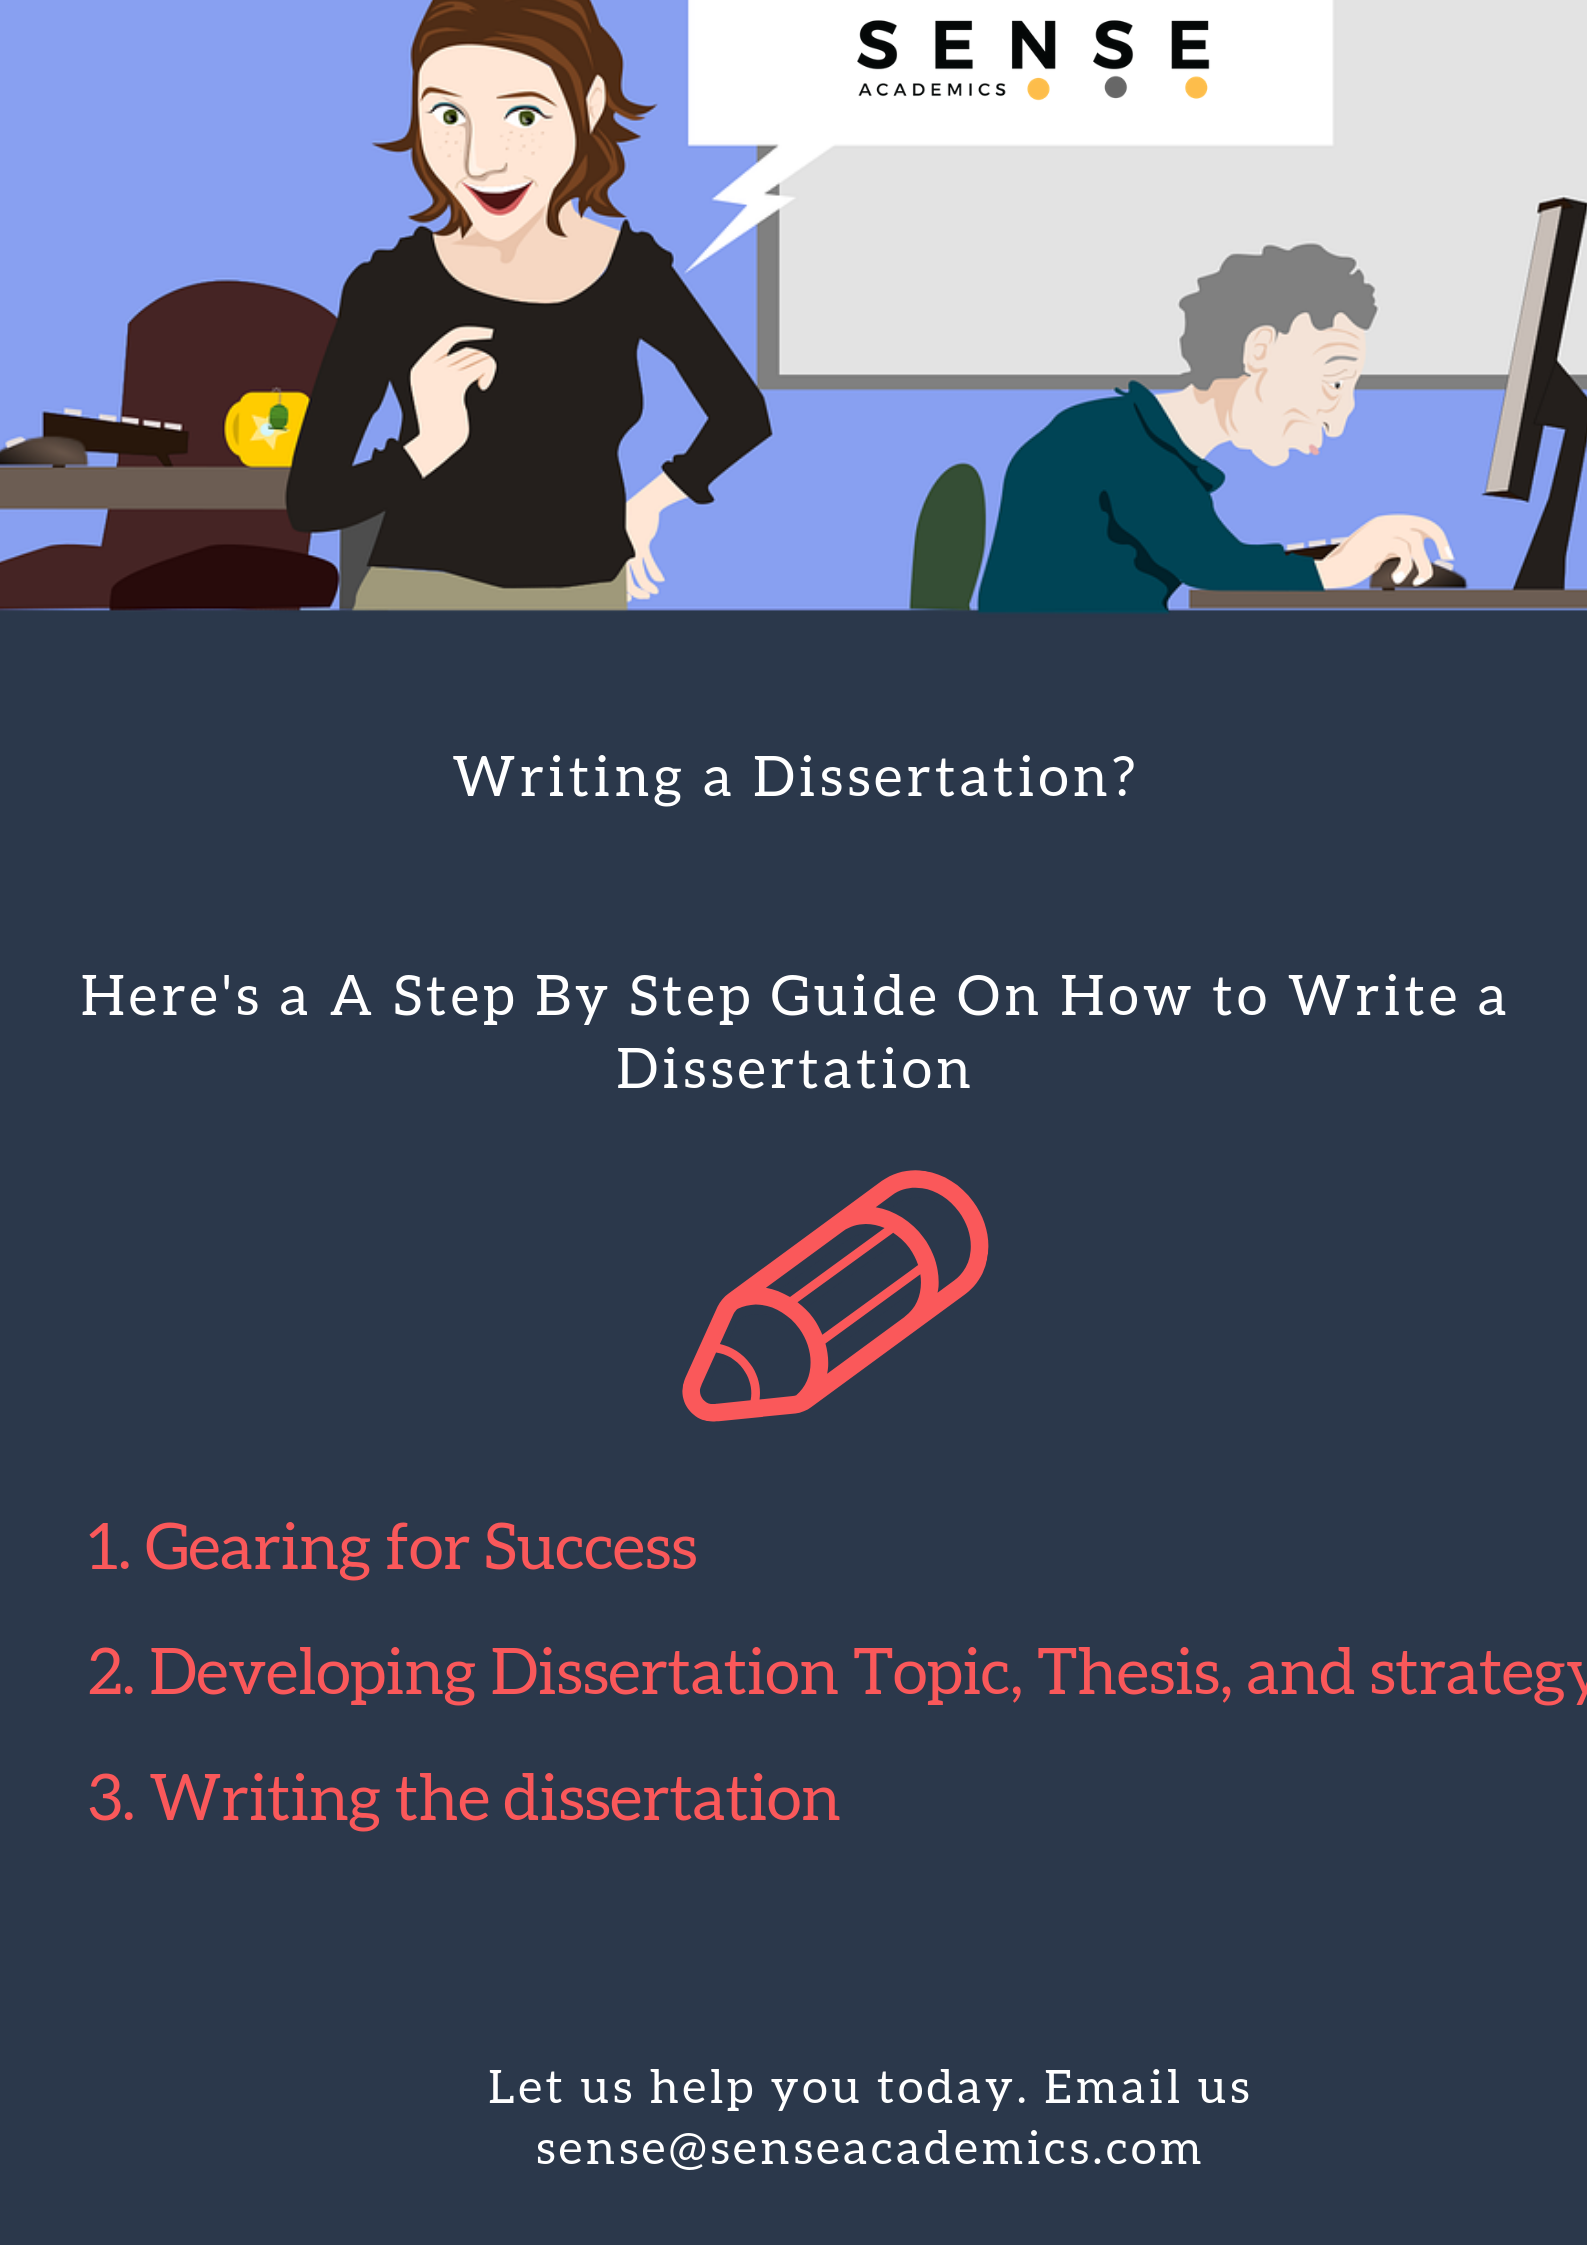 Writing a dissertation guide